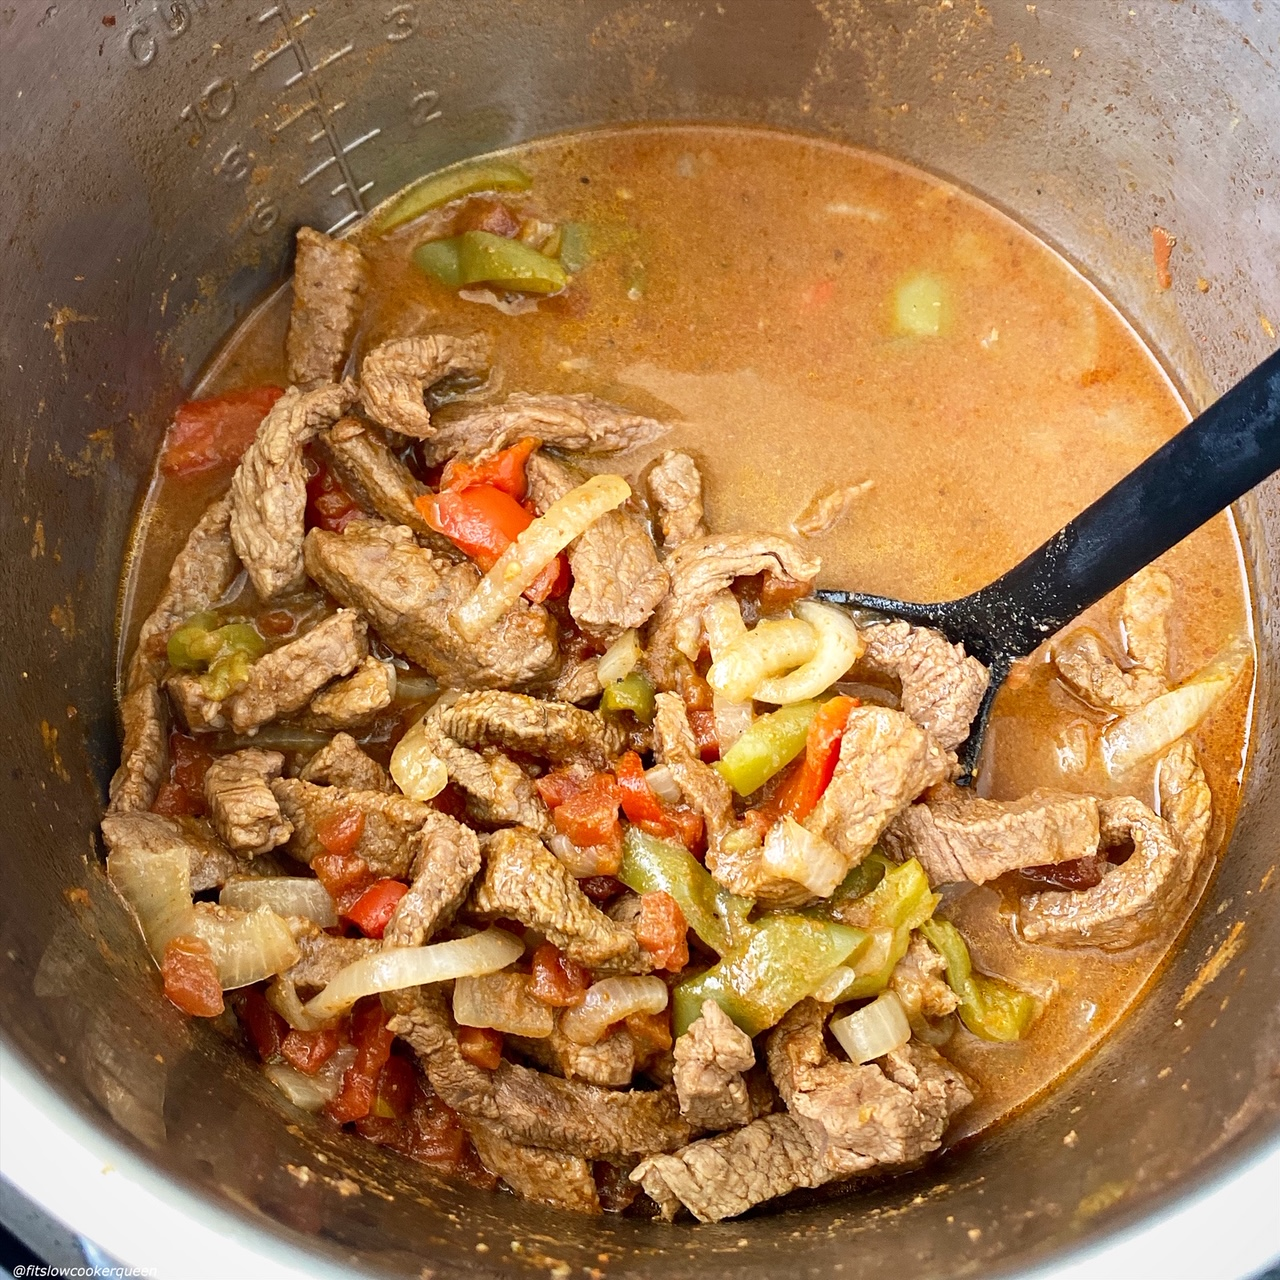 after pic of cooked steak fajitas in the pressure cooker